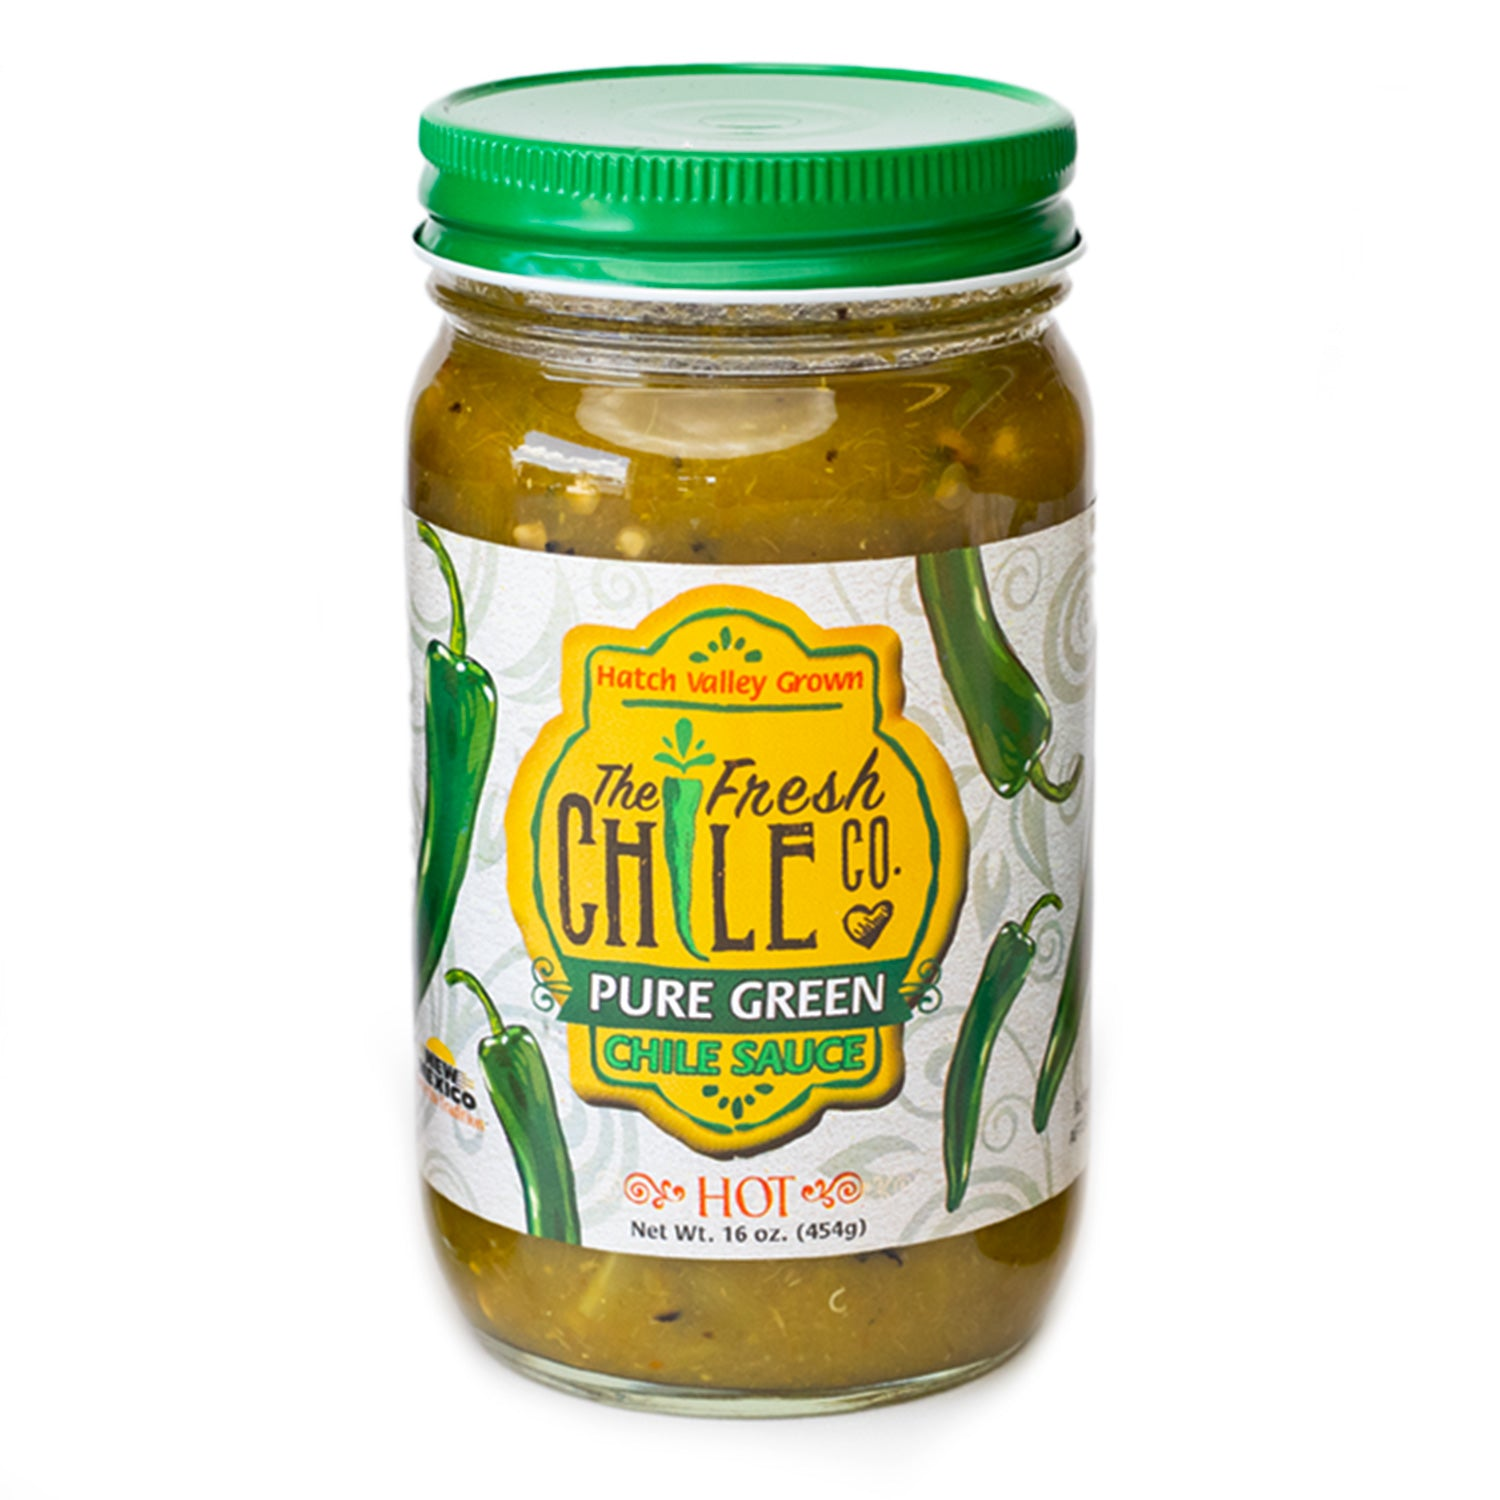 The Fresh Chile Company Green Chile Sauce - Hot